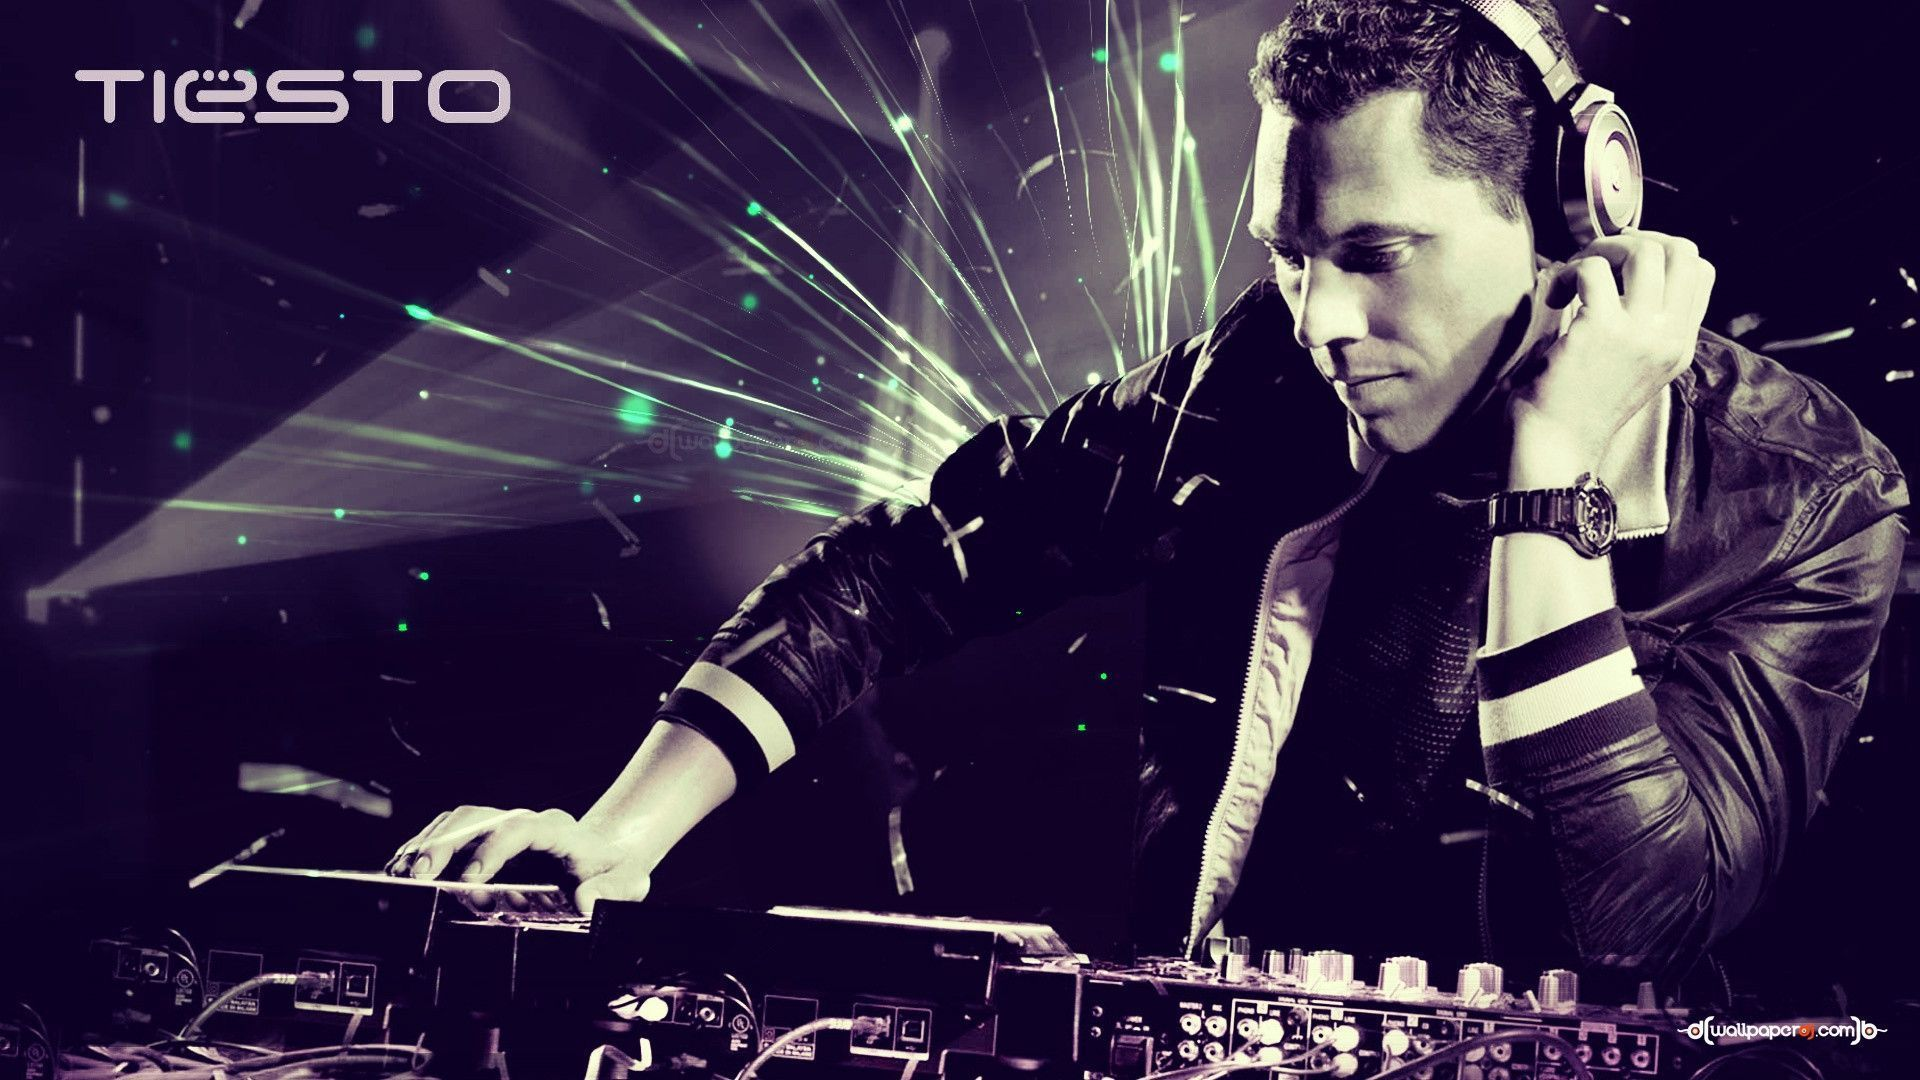 DJ Tiesto Wallpapers 2015 Wallpaper Cave Michael